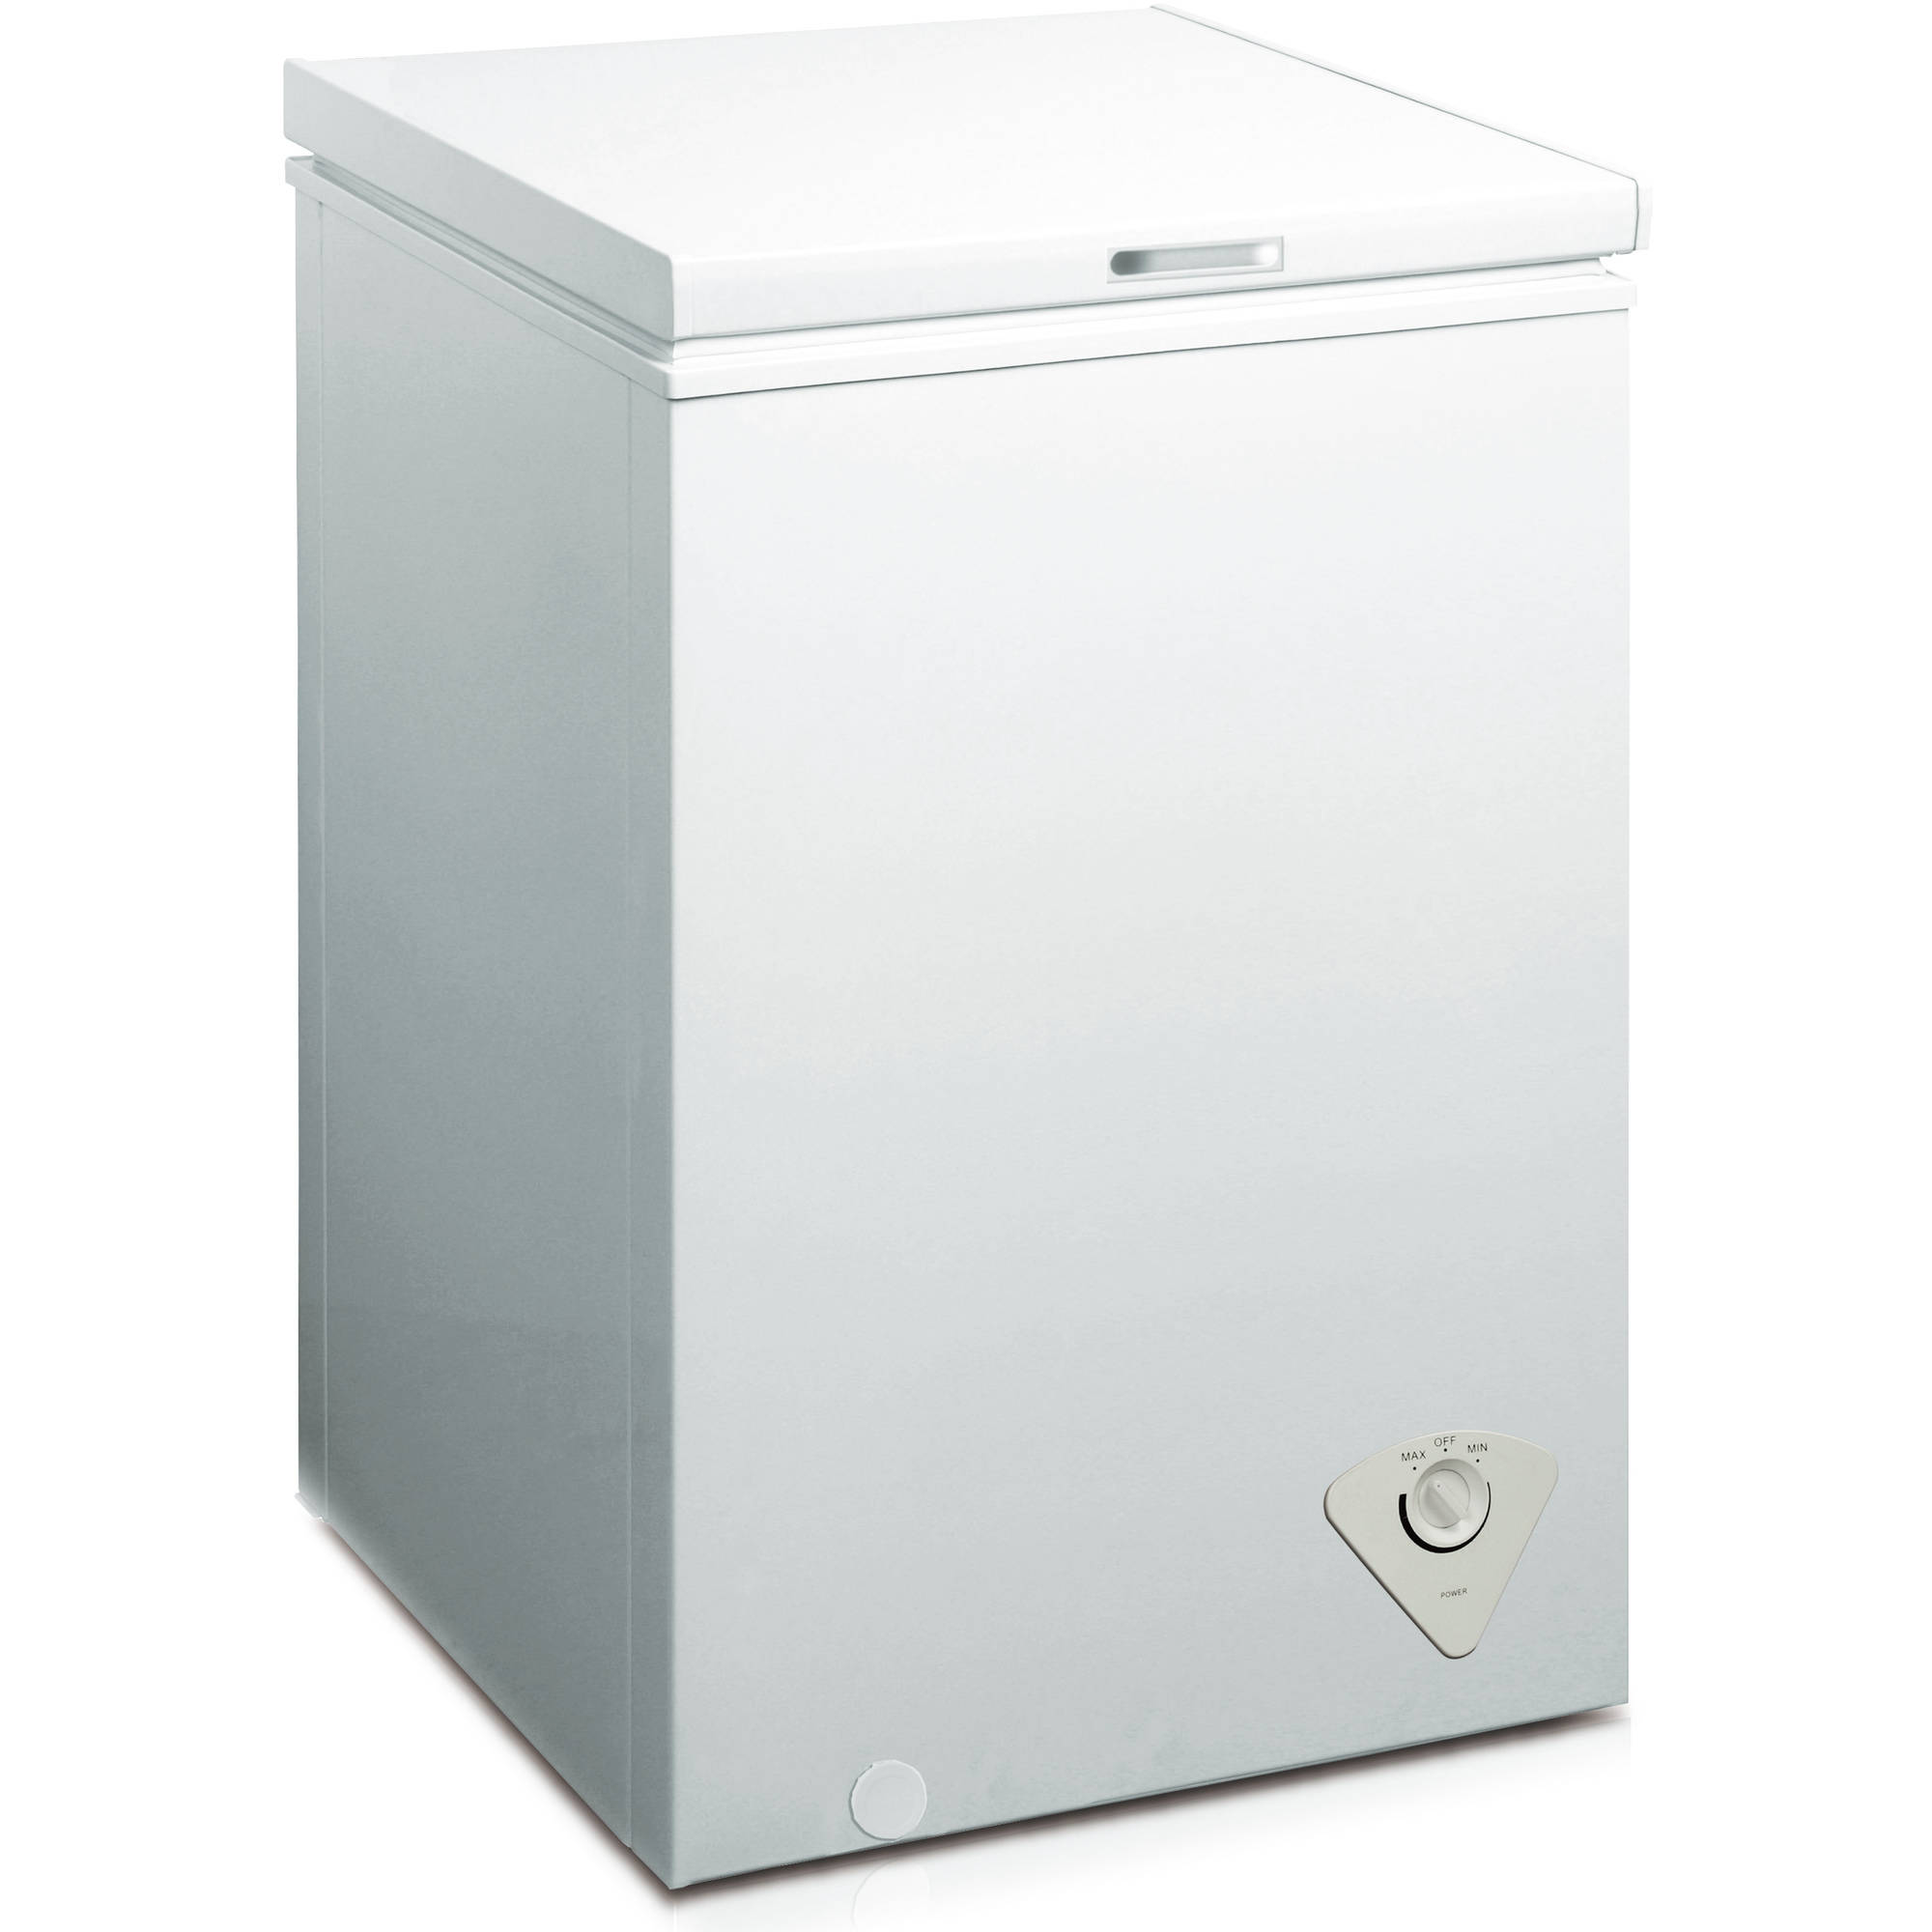 Arctic King 3.5 cu ft Chest Freezer